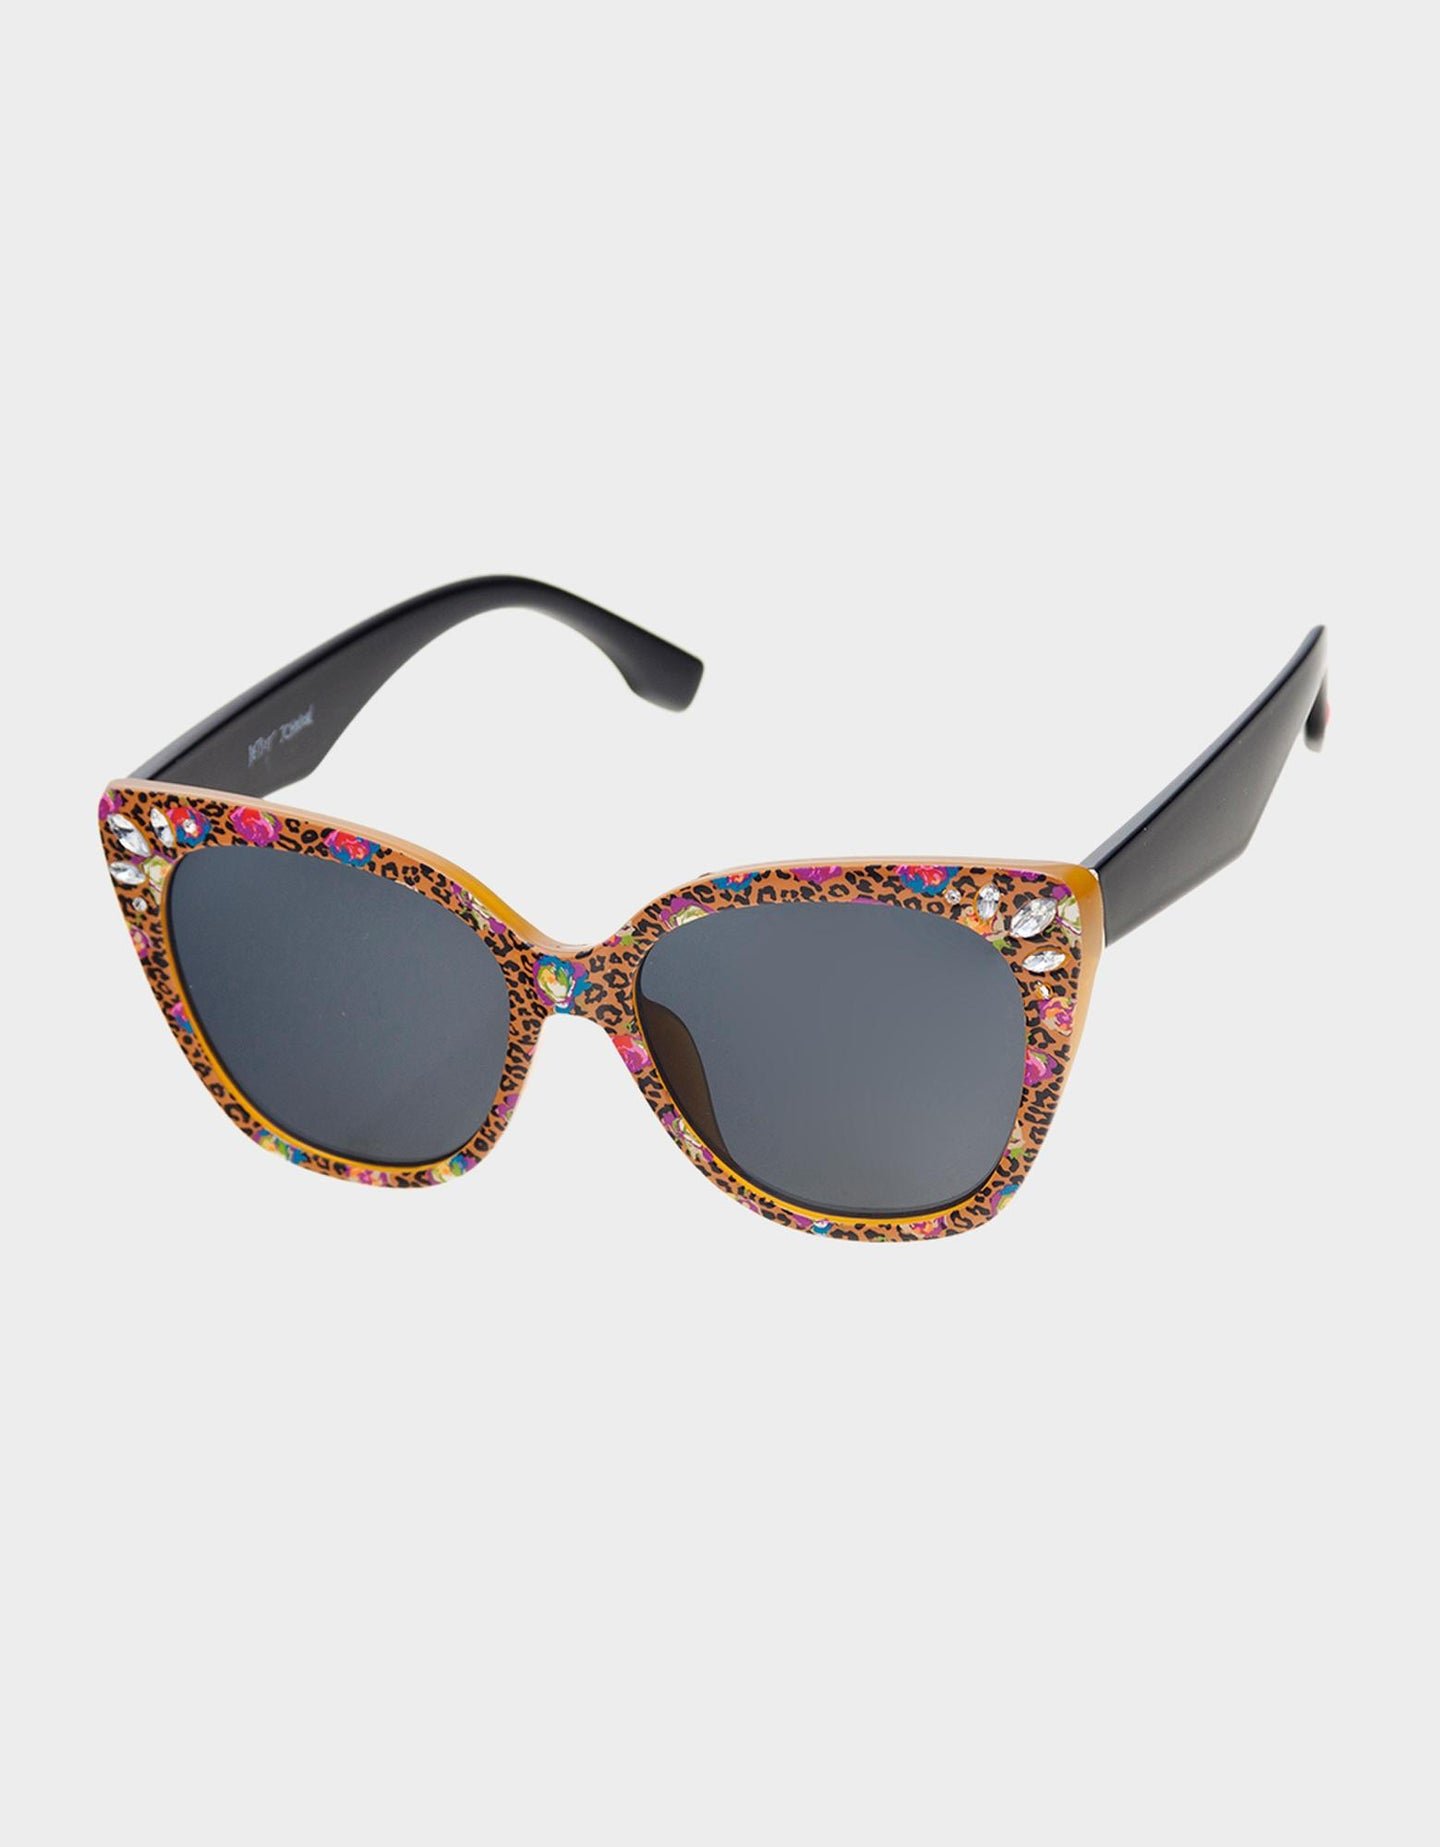 BIT OF BLING SUNGLASSES LEOPARD - ACCESSORIES - Betsey Johnson